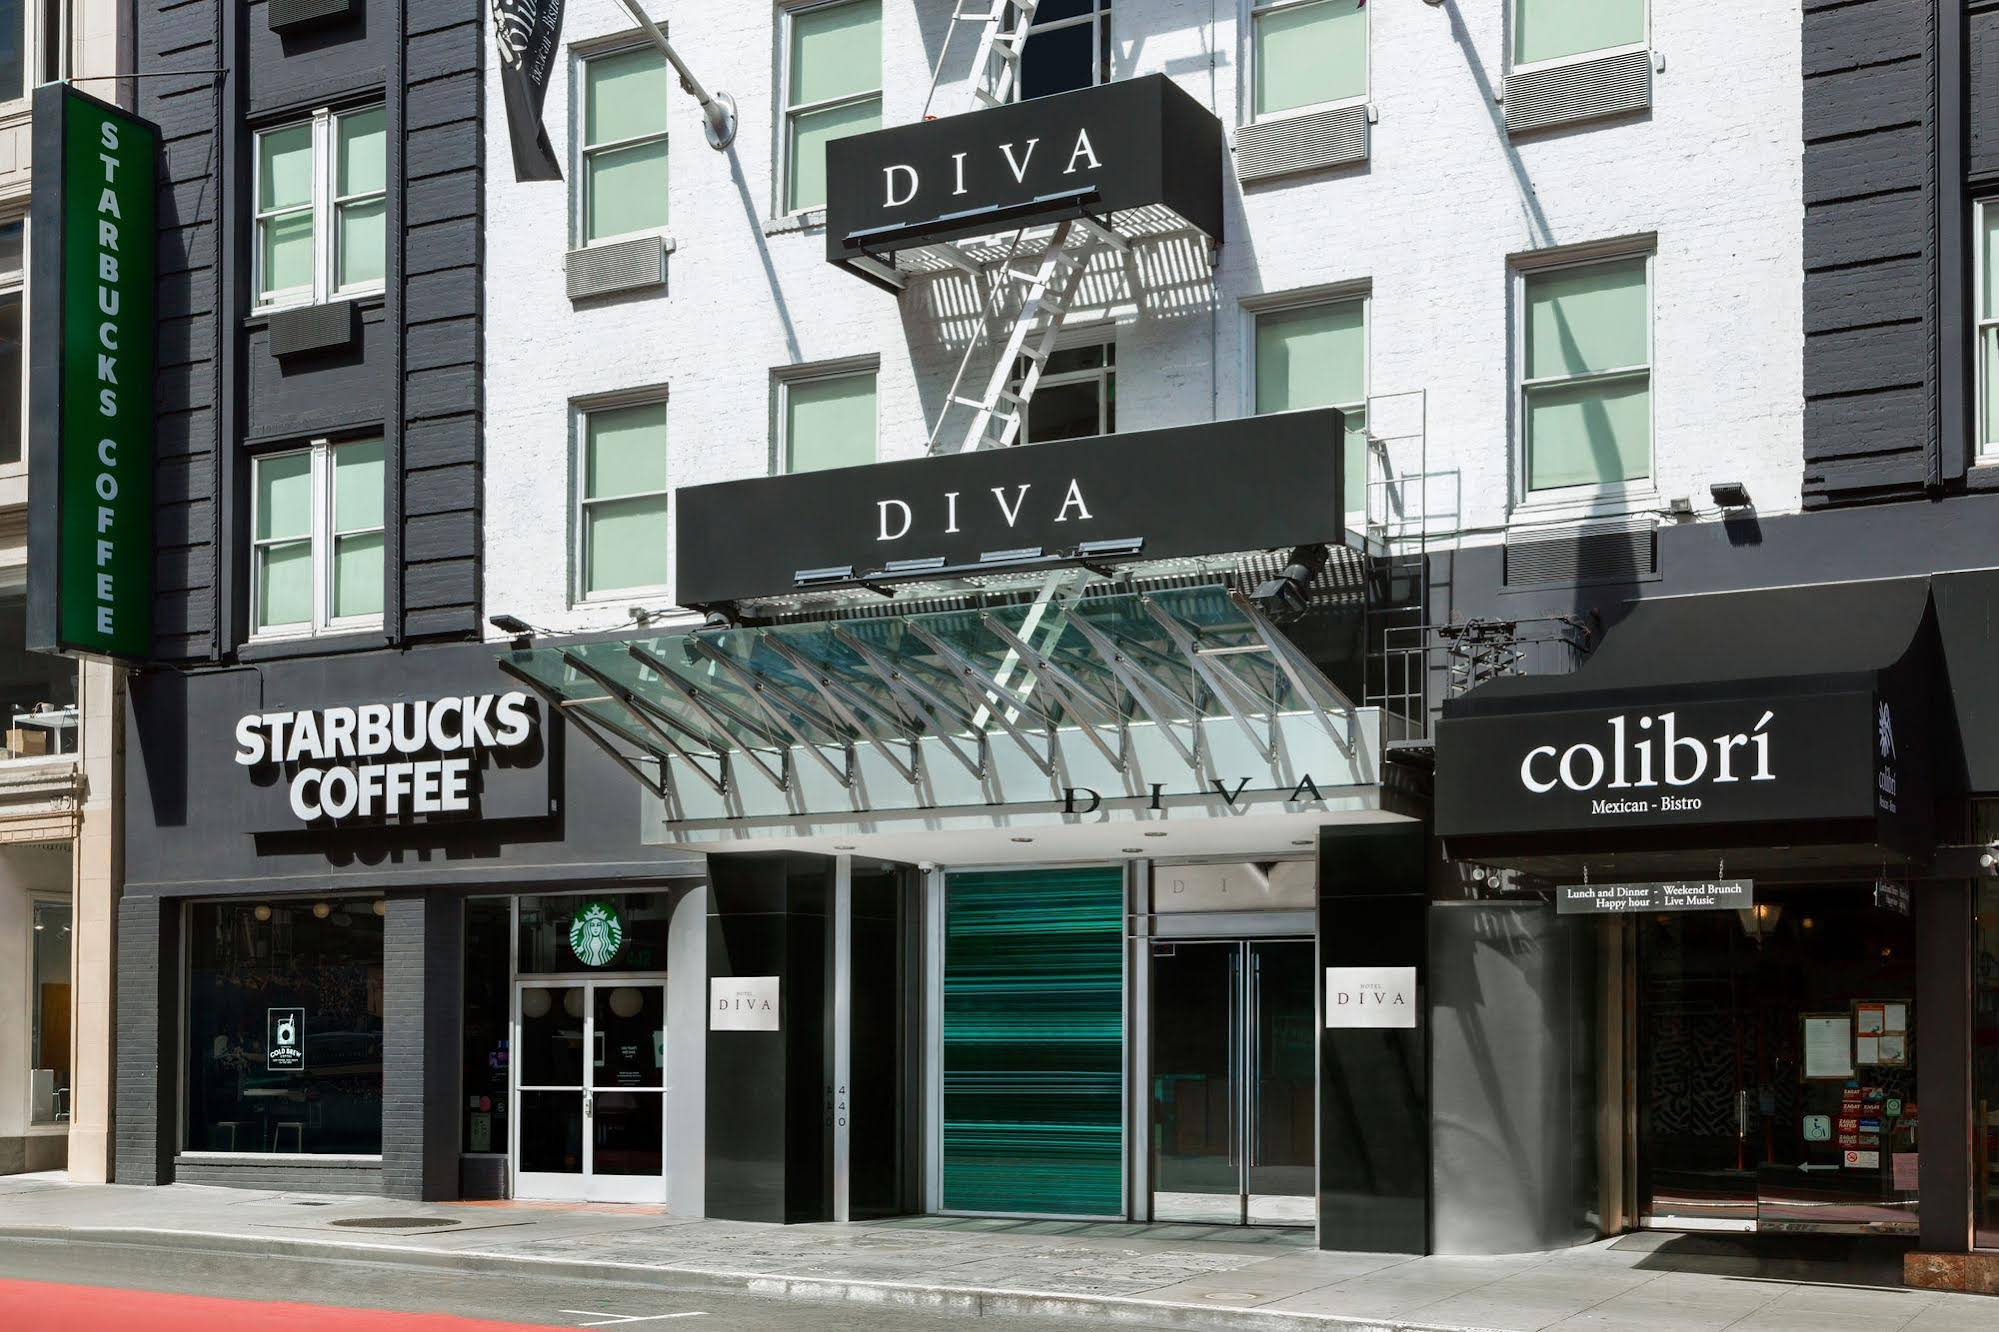 Hotel Diva A Personality Hotel